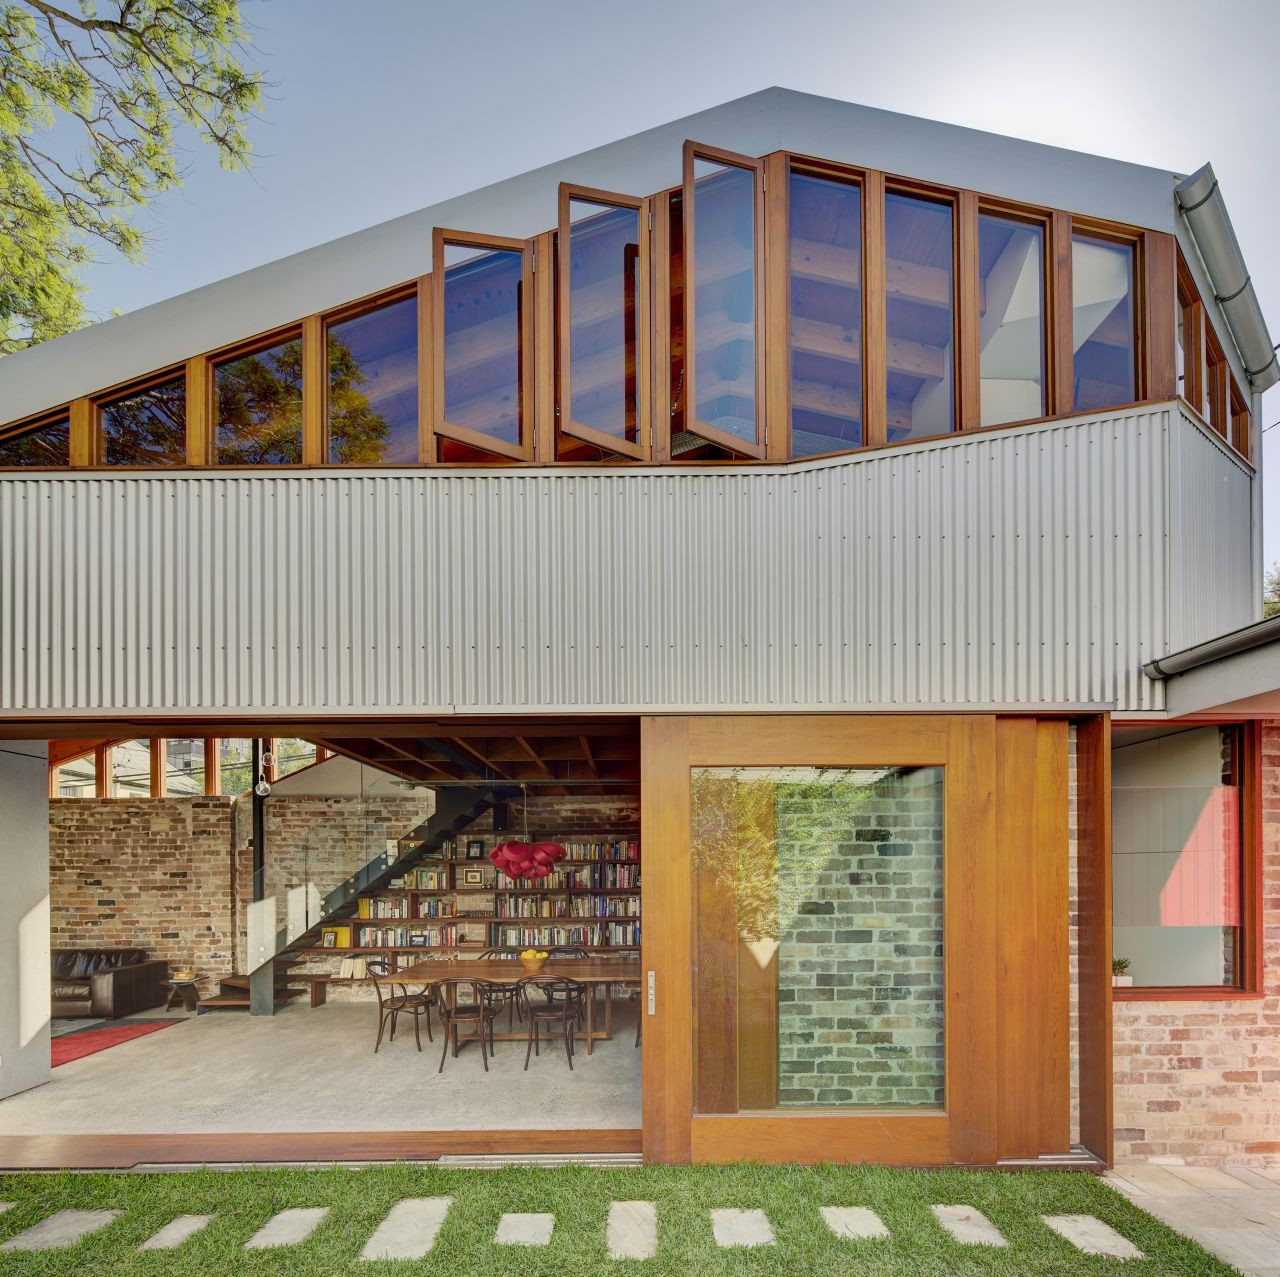 Cowshed House / Carterwilliamson Architects, © Brett Boardman